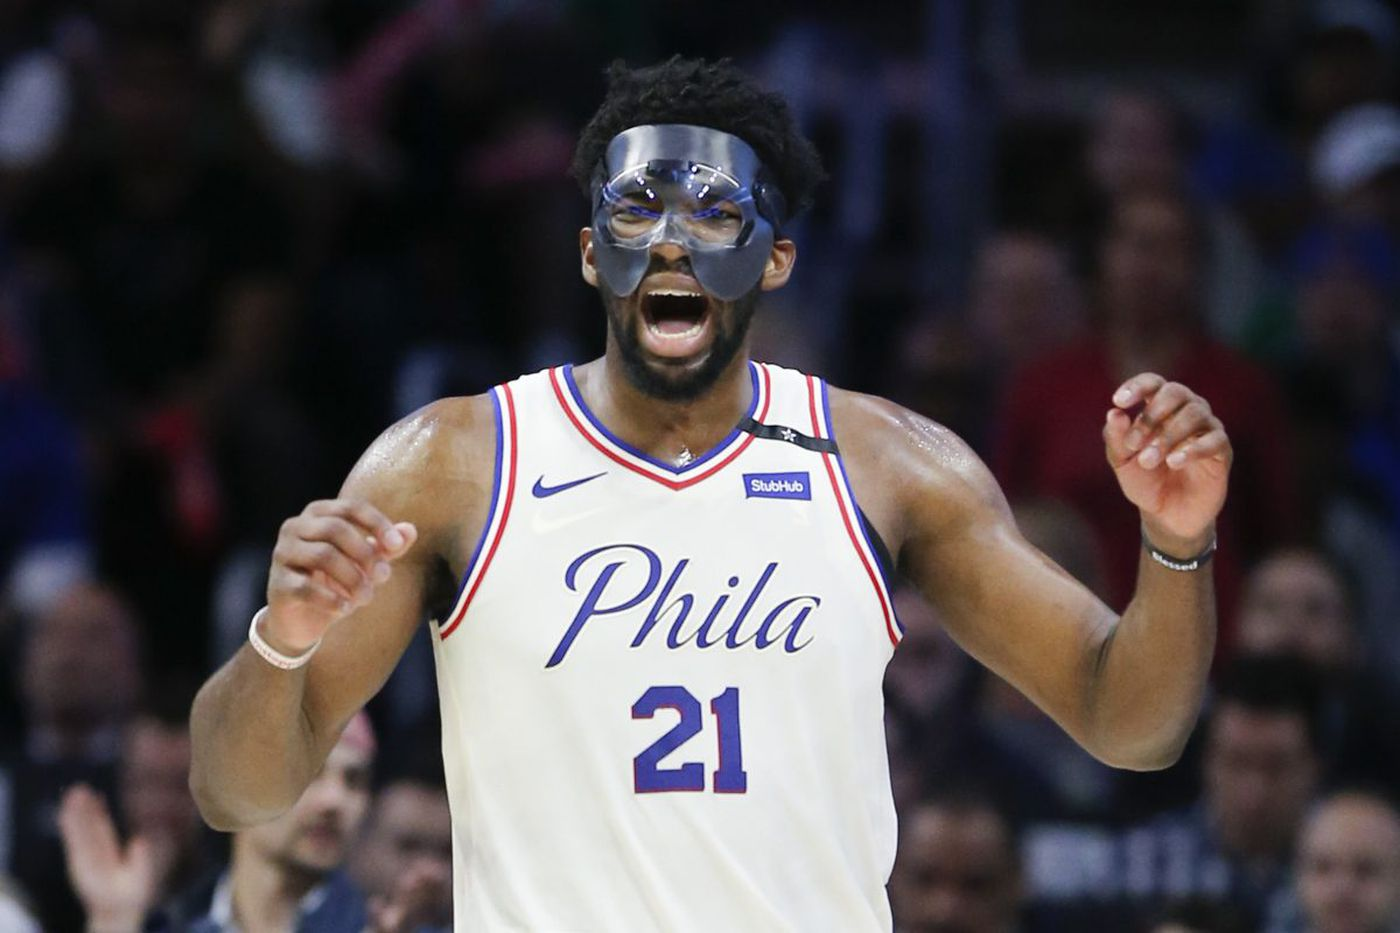 Sixers-Celtics: See all of our coverage leading to Game 4